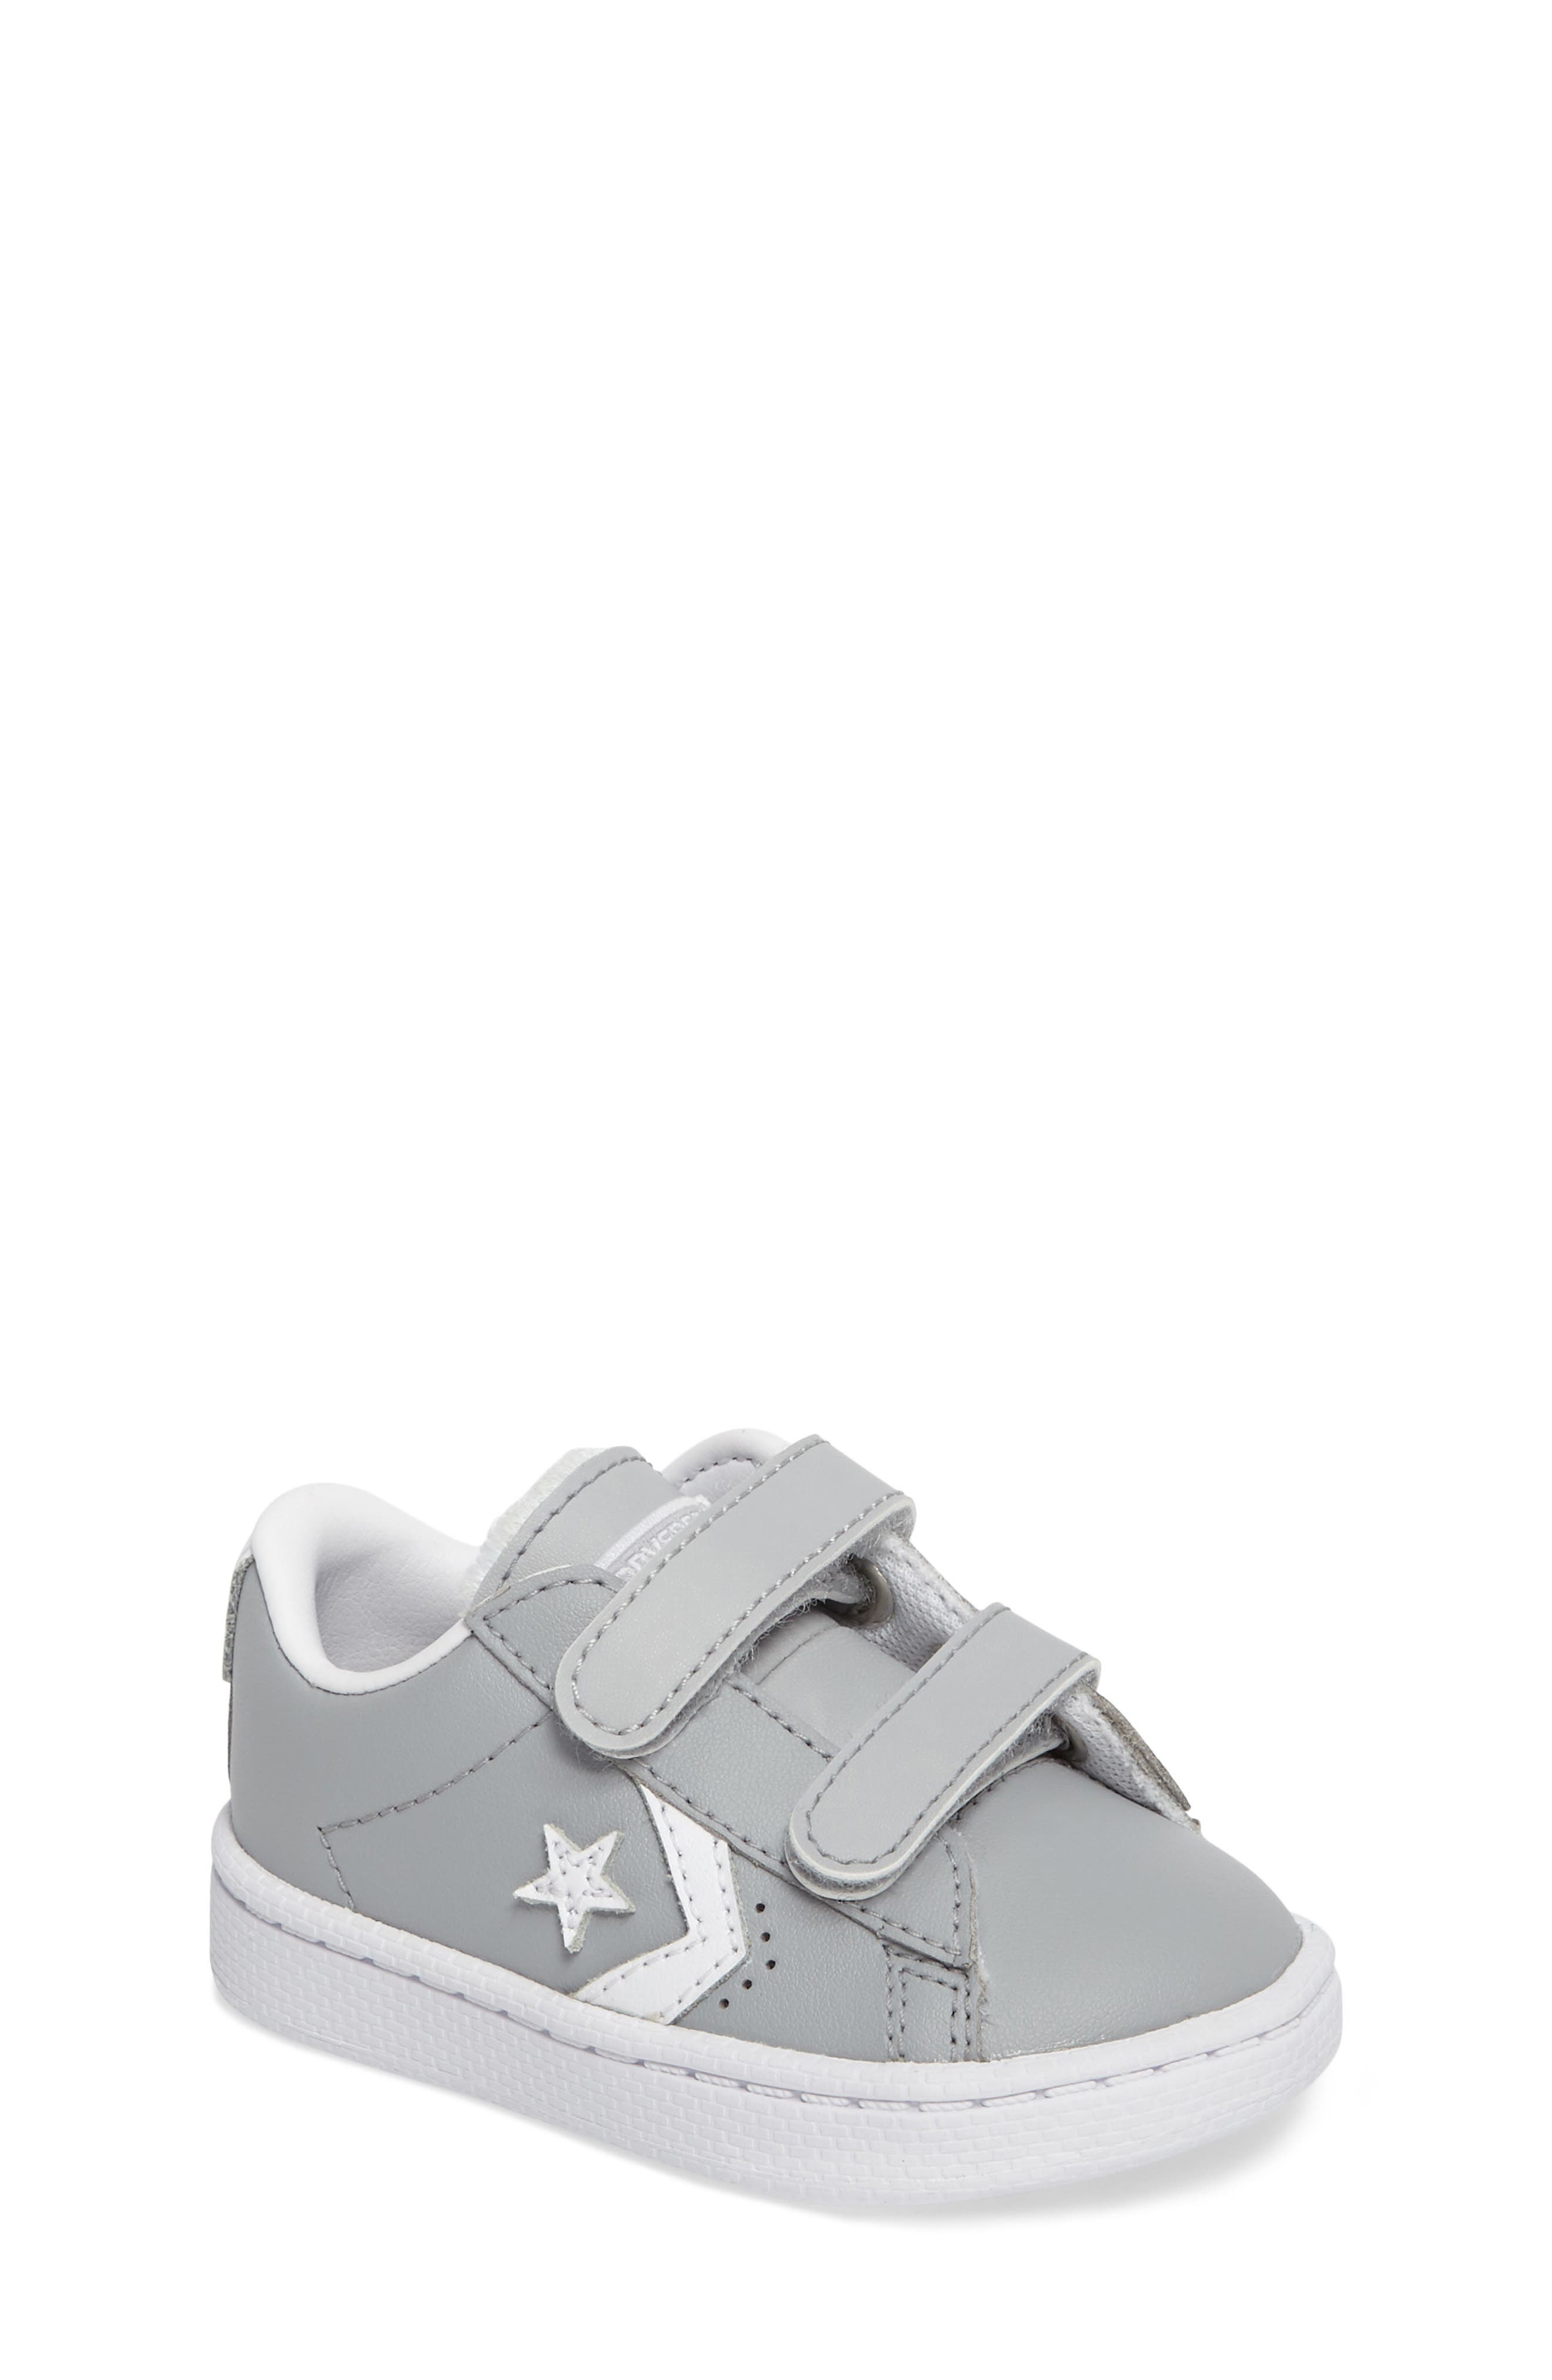 Pro Leather Low Top Sneaker,                         Main,                         color, 097